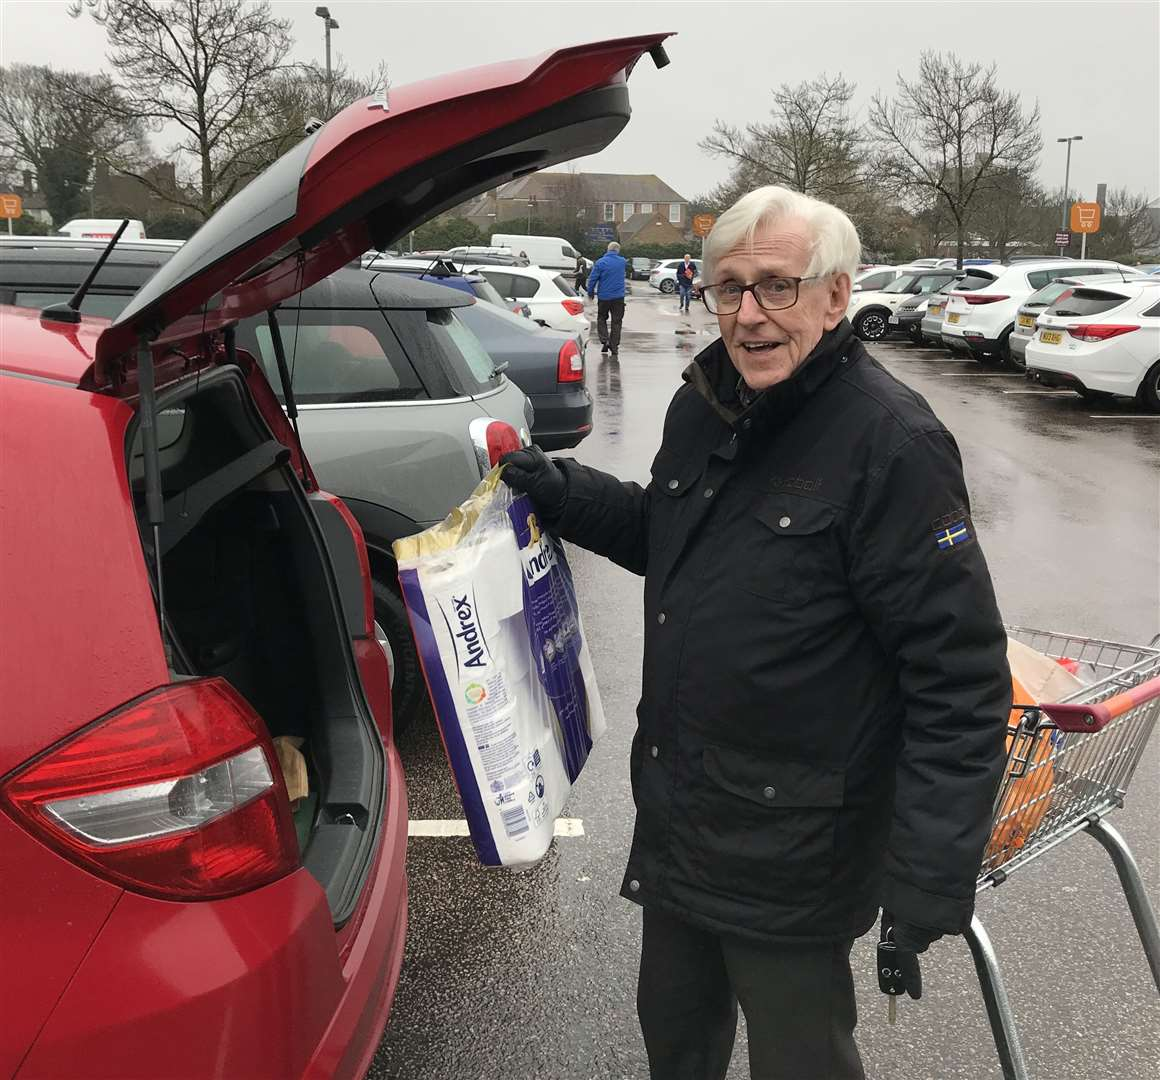 Mike Grantham, 83, who came out of Sainsbury's 10 minutes after it opened with the last of the toilet roll